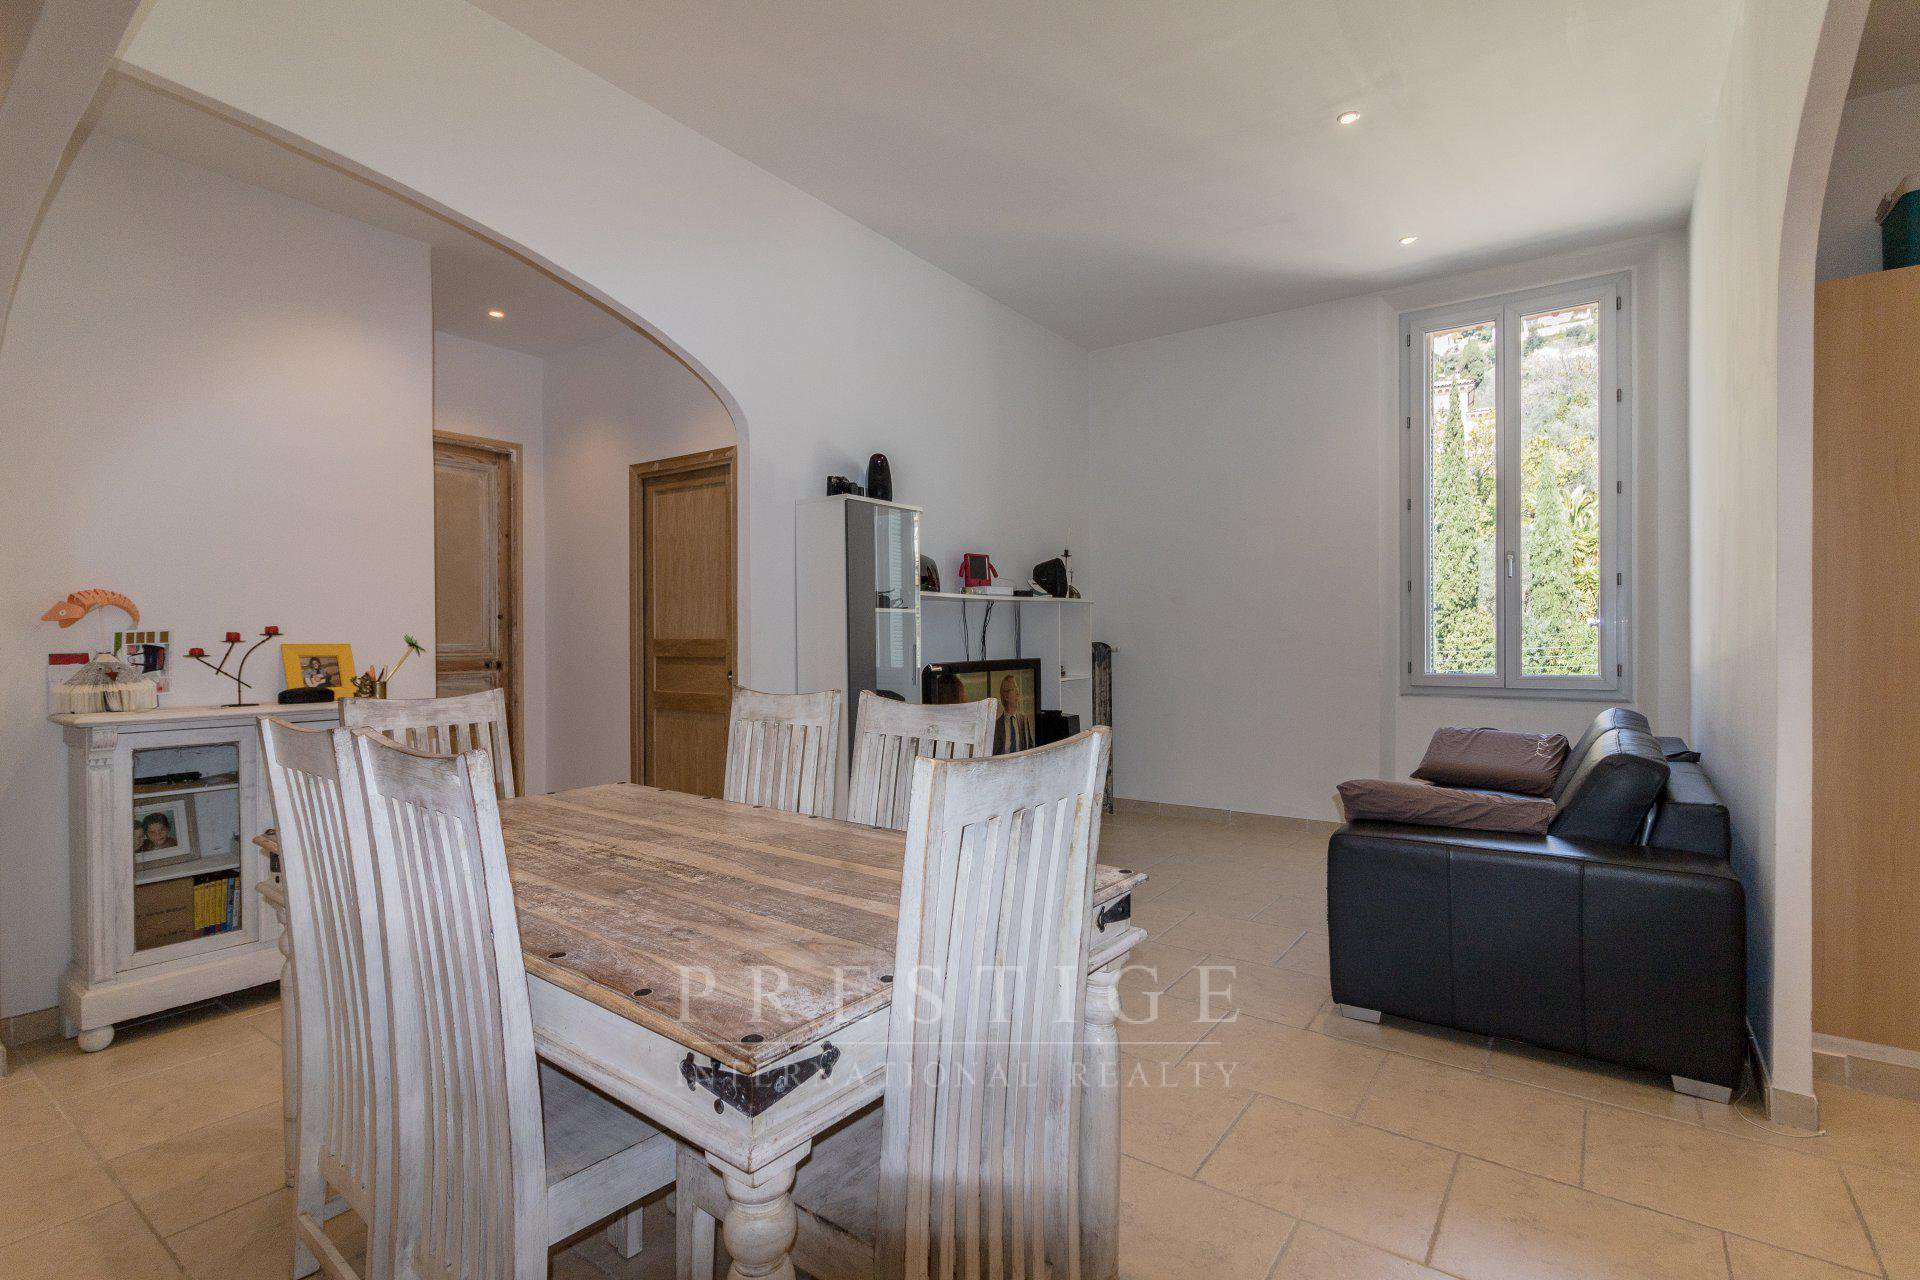 grasse, luxury flat 93sqm with cellar and park